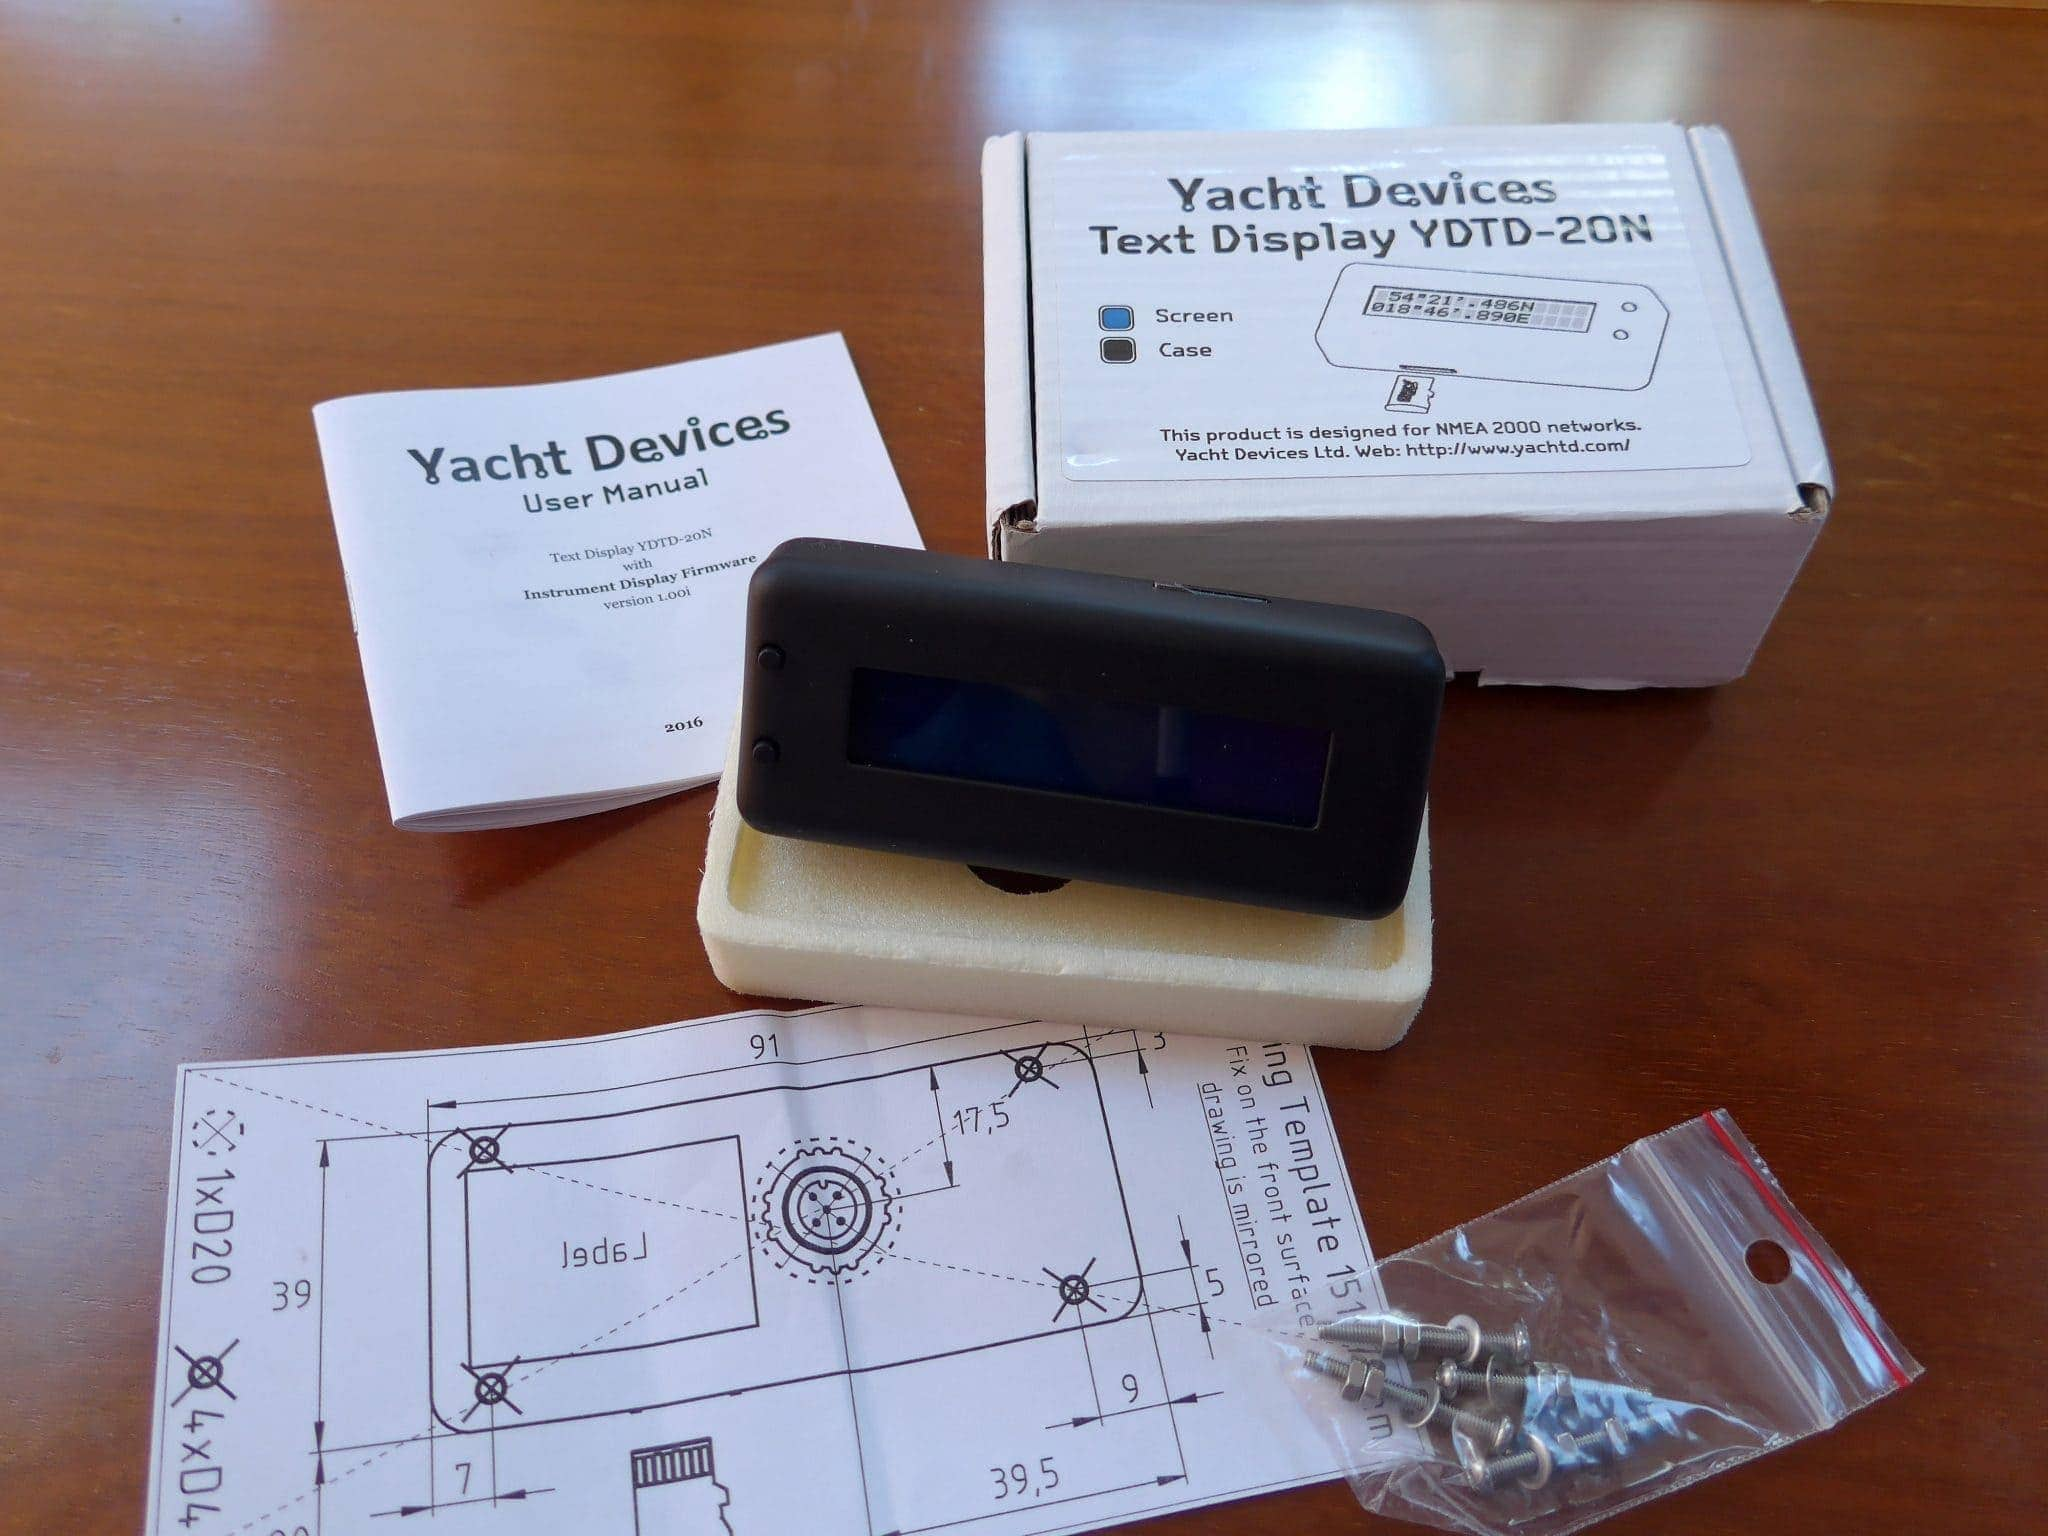 Yacht Devices Text Display packaging